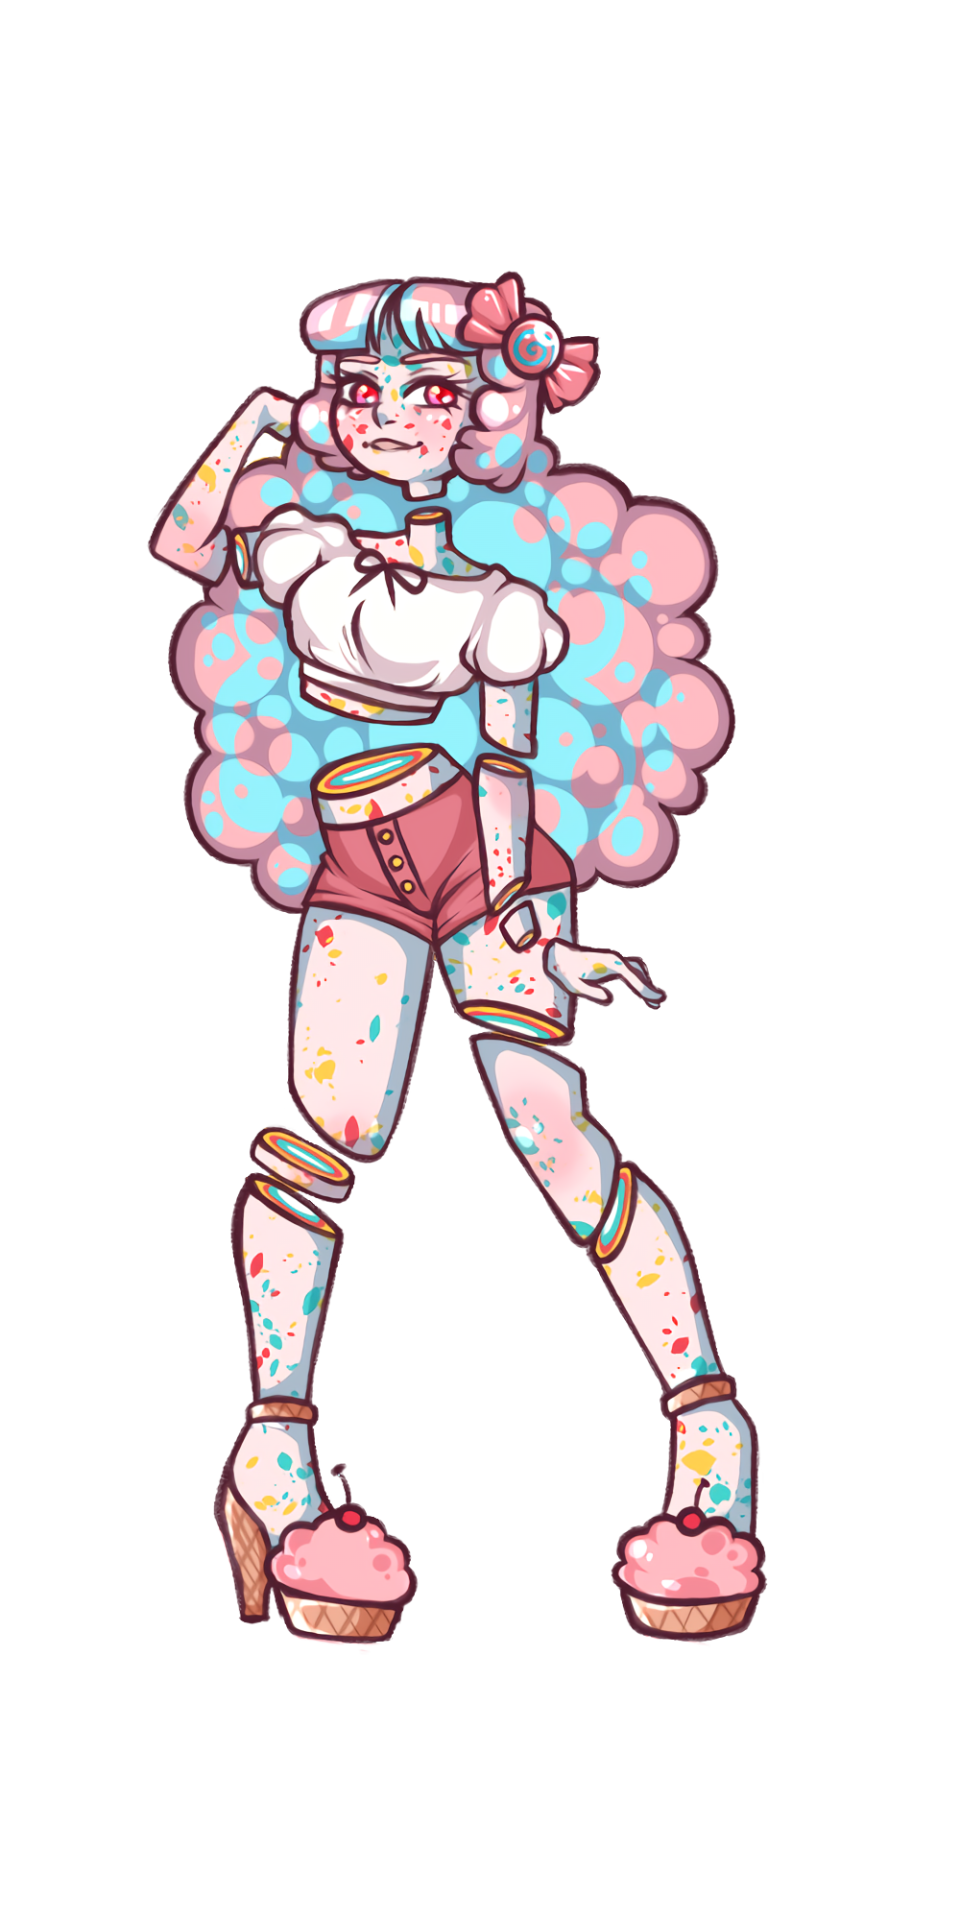 Candy Skin People Are My Favorite To Draw I Did Not Draw This One Though Who S The Artist Cute Drawings Cartoon Art Cute Art 'candy gore' is actually a type of art (look it up, it's pretty darn cool), where instead of blood and guts, it's candy or stars! pinterest